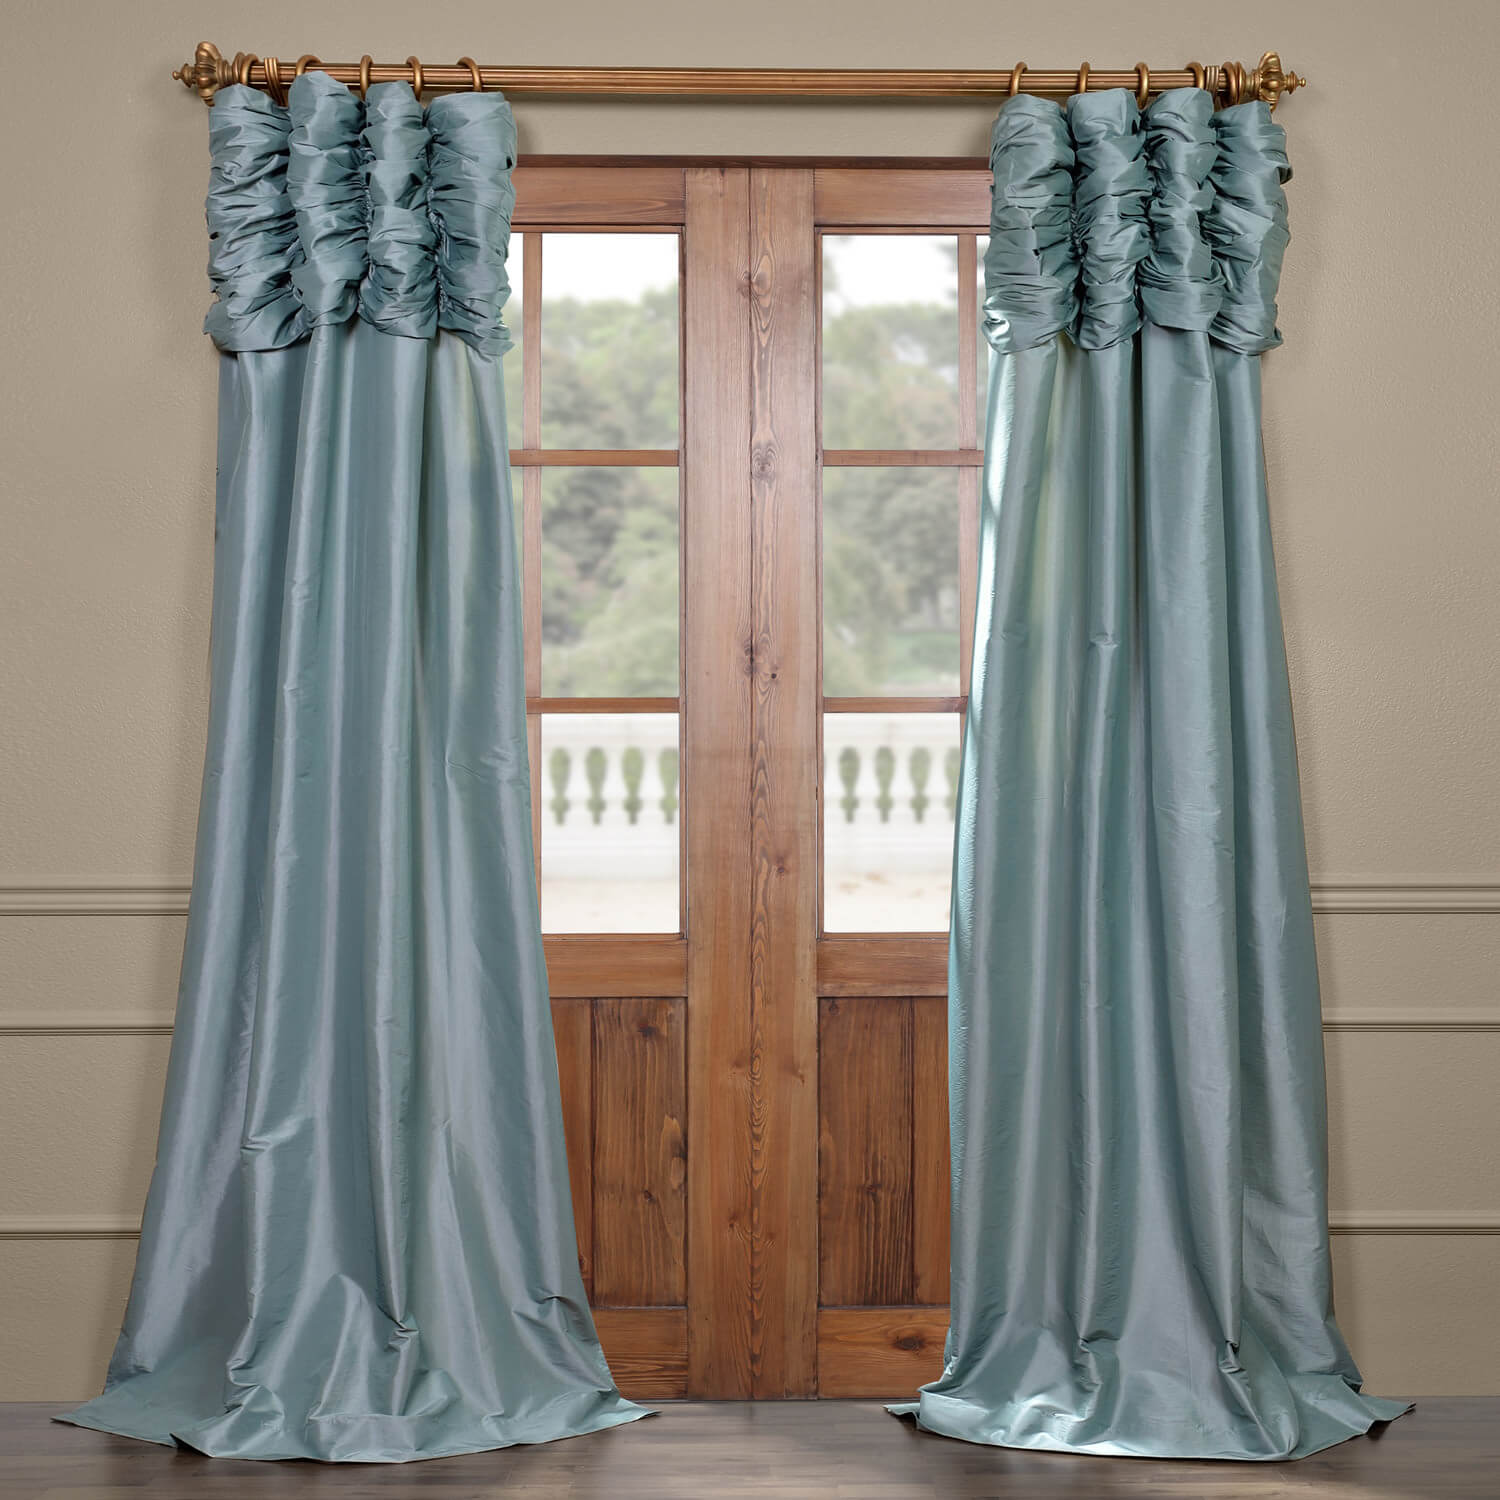 Robins Egg Ruched Faux Solid Taffeta Curtain